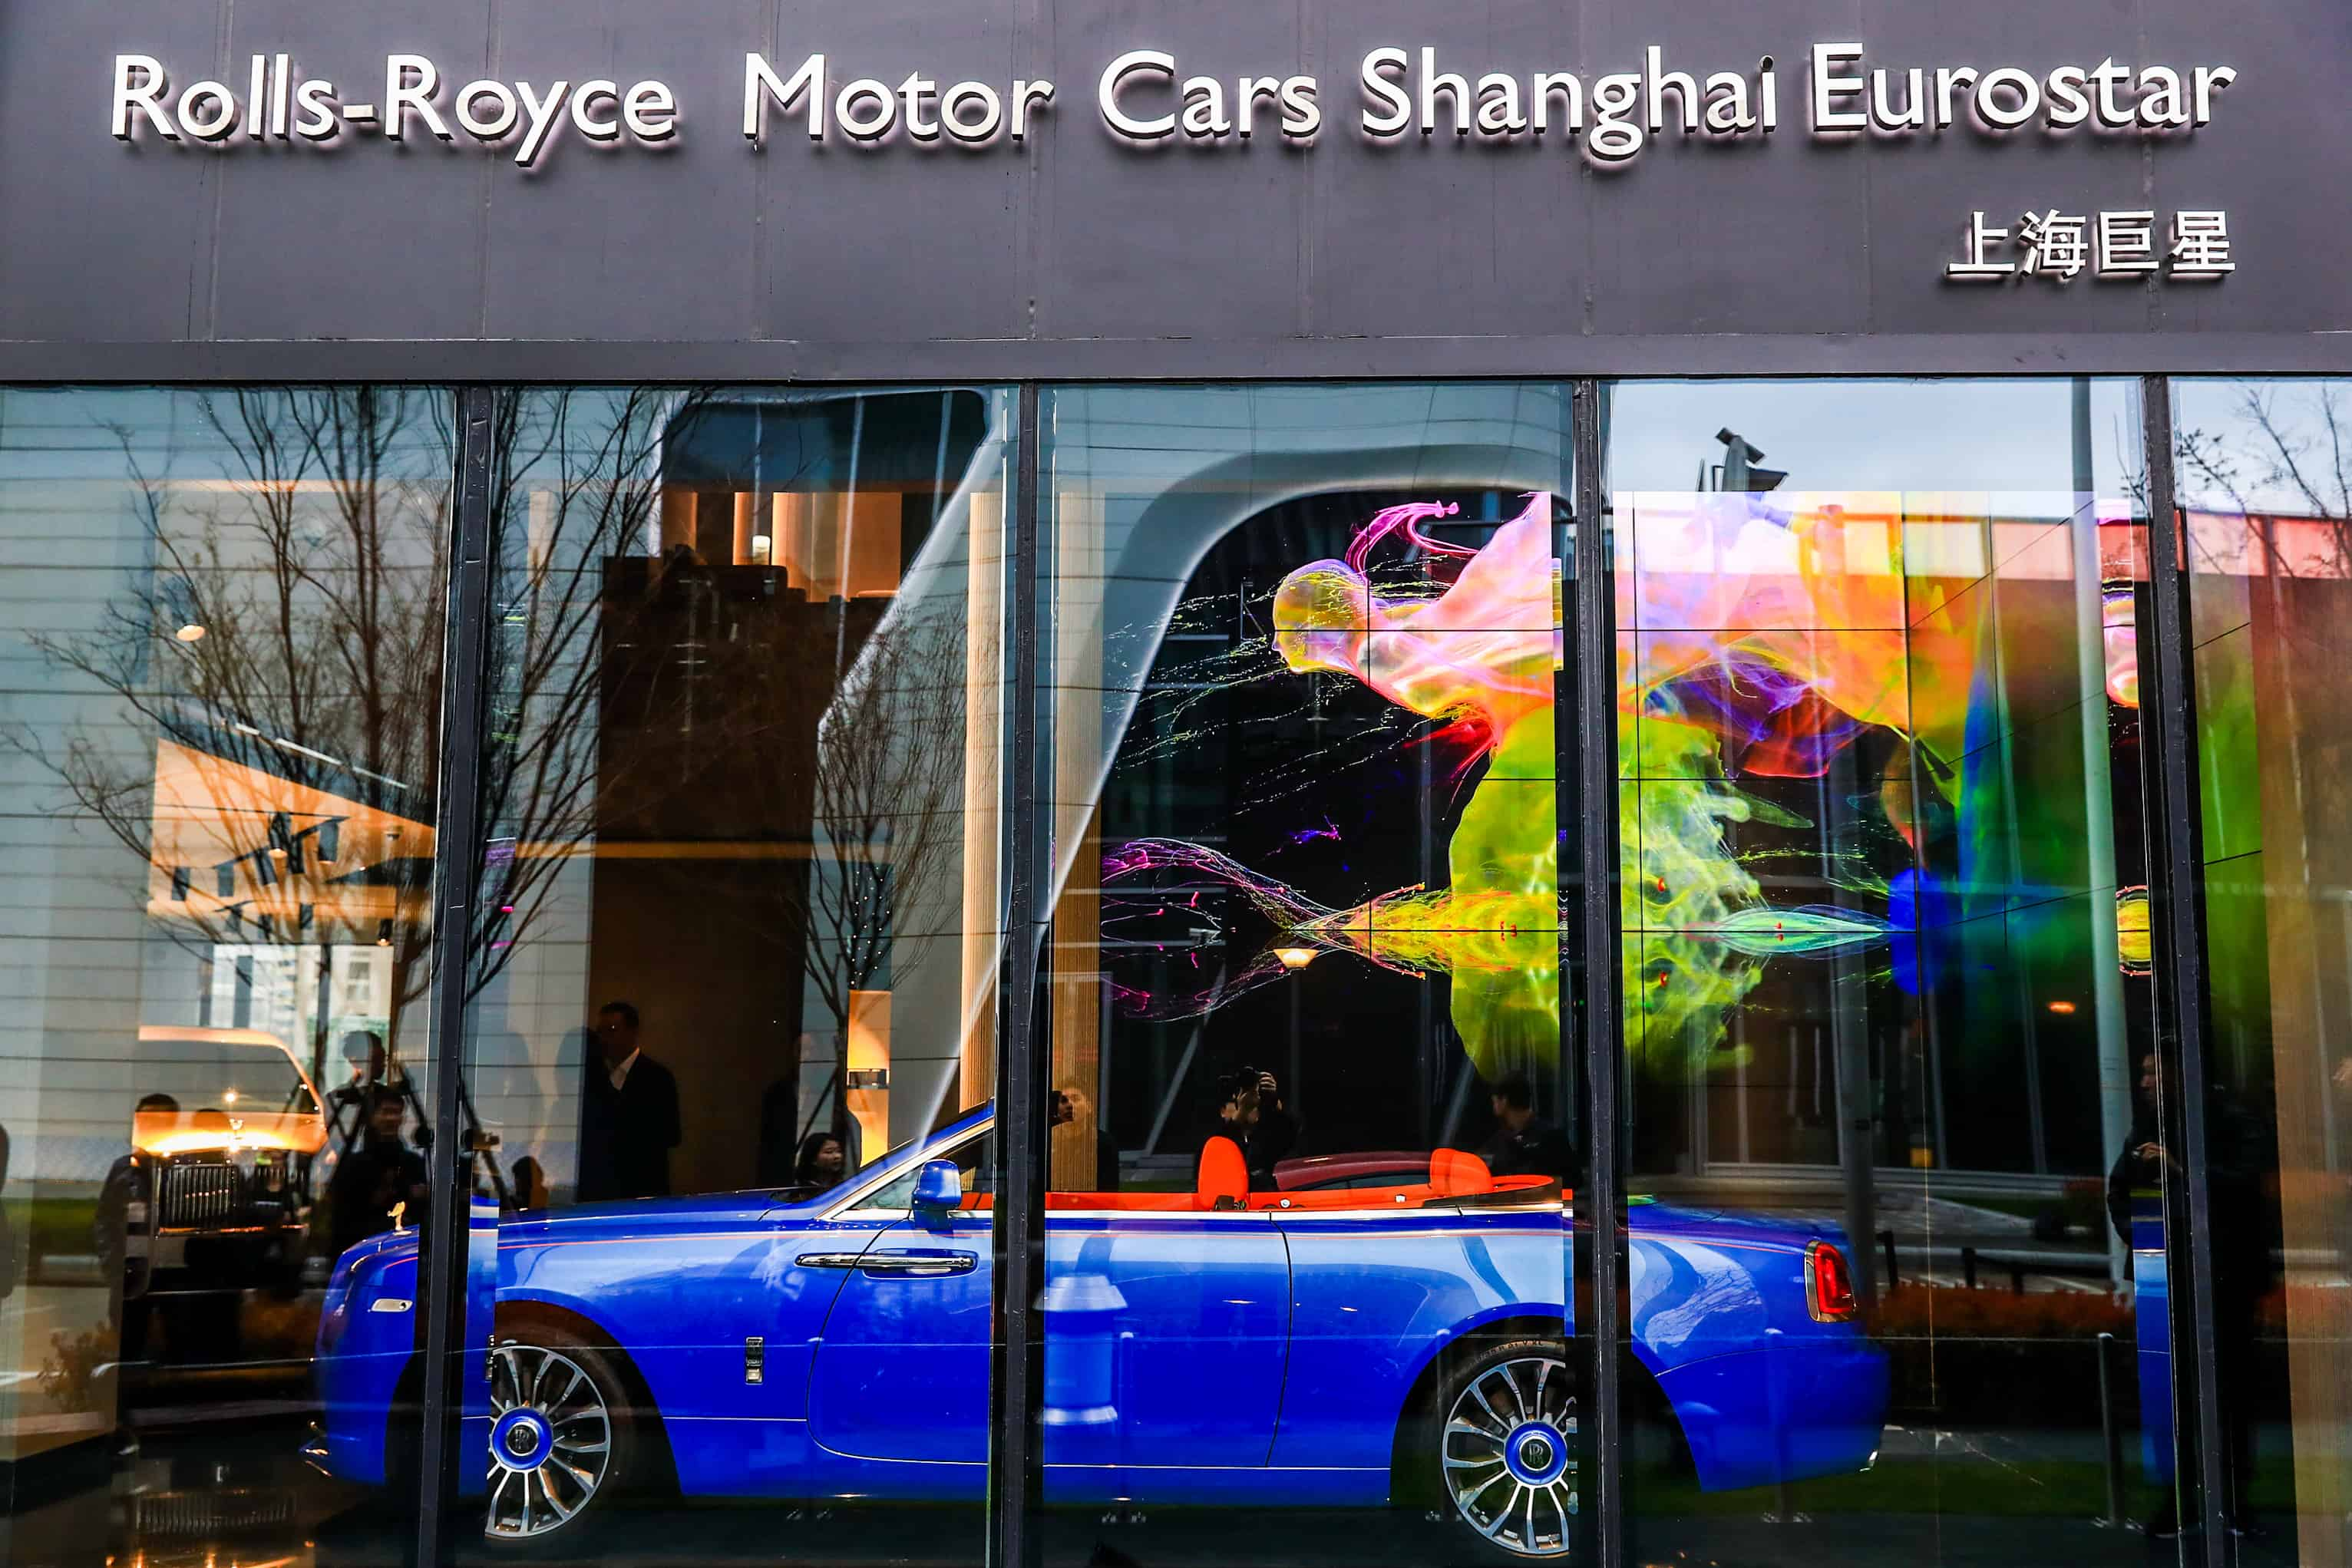 The Rolls-Royce Motor Cars Shanghai EuroStar dealership in Shanghai, China